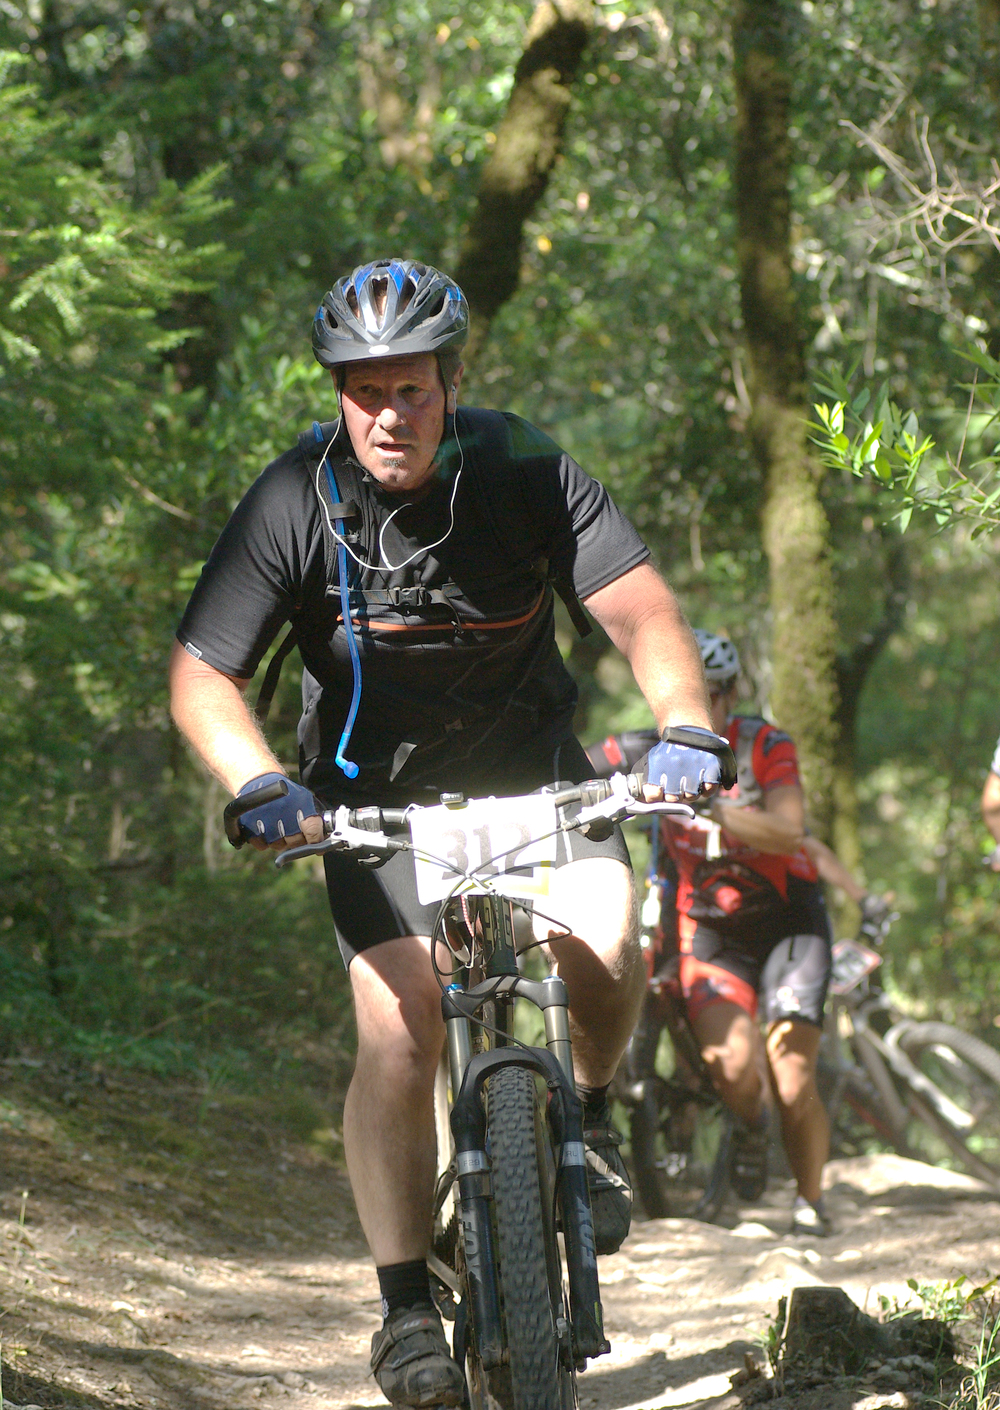 Larry Crabtree mountain biking at Annadel State Park.